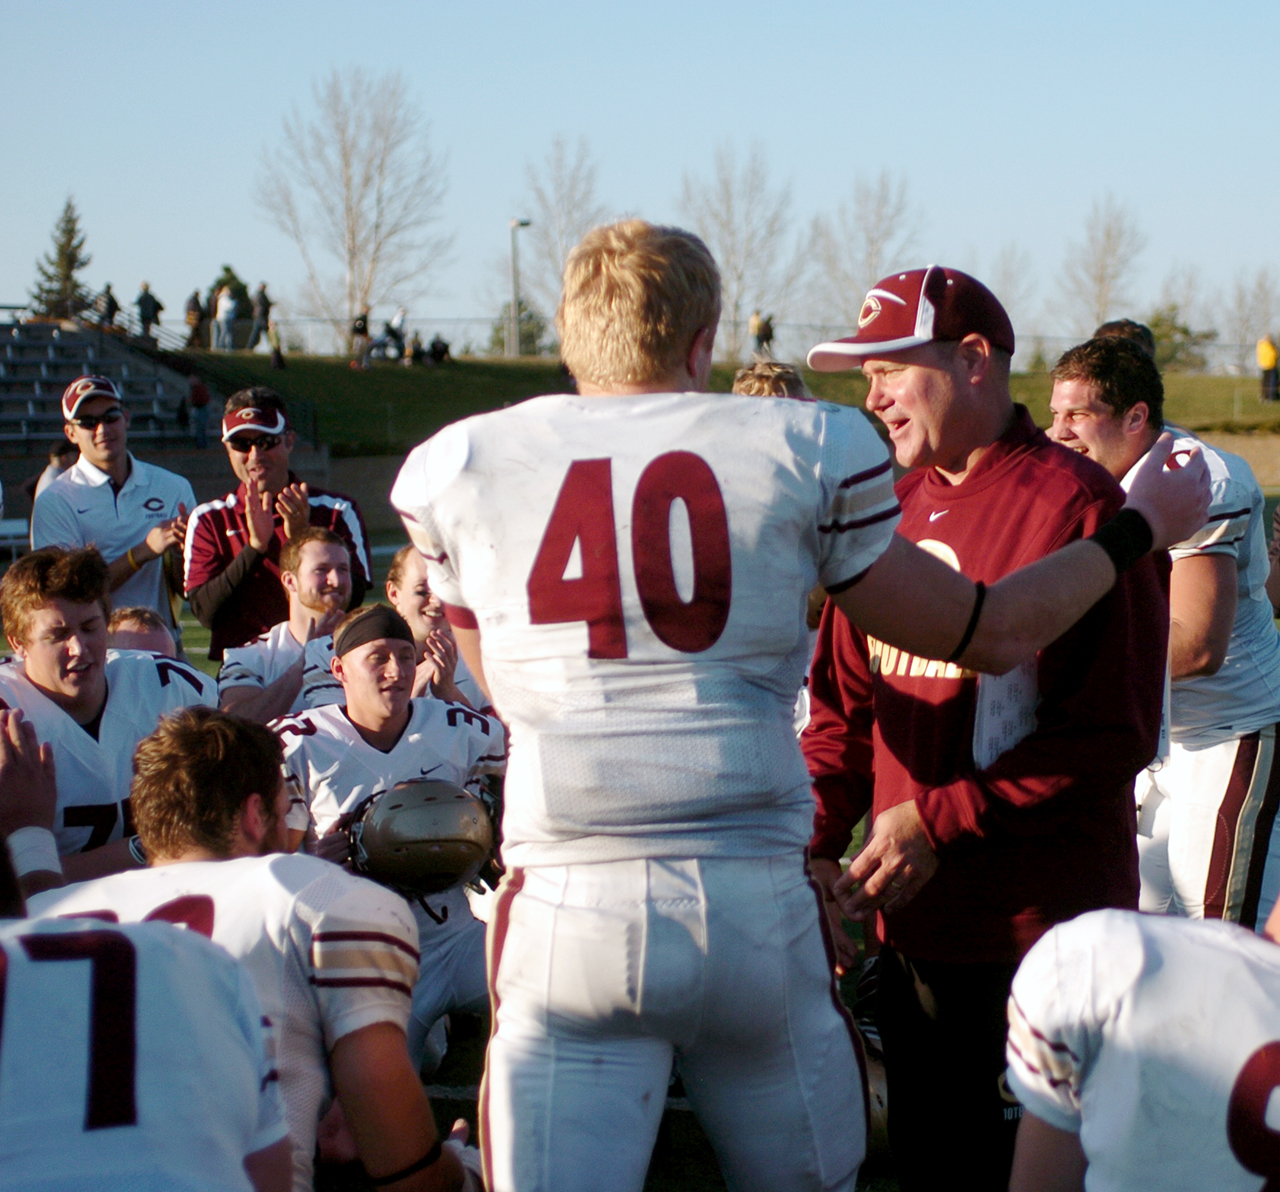 Submitted photo. Senior fullback Brett Baune and Head Coach Terry Horan embrace after Concordia's win over Gustavus on November 9. Baune broke Horan's record for most career touchdowns by a Cobber,a record that stood for 24 years.